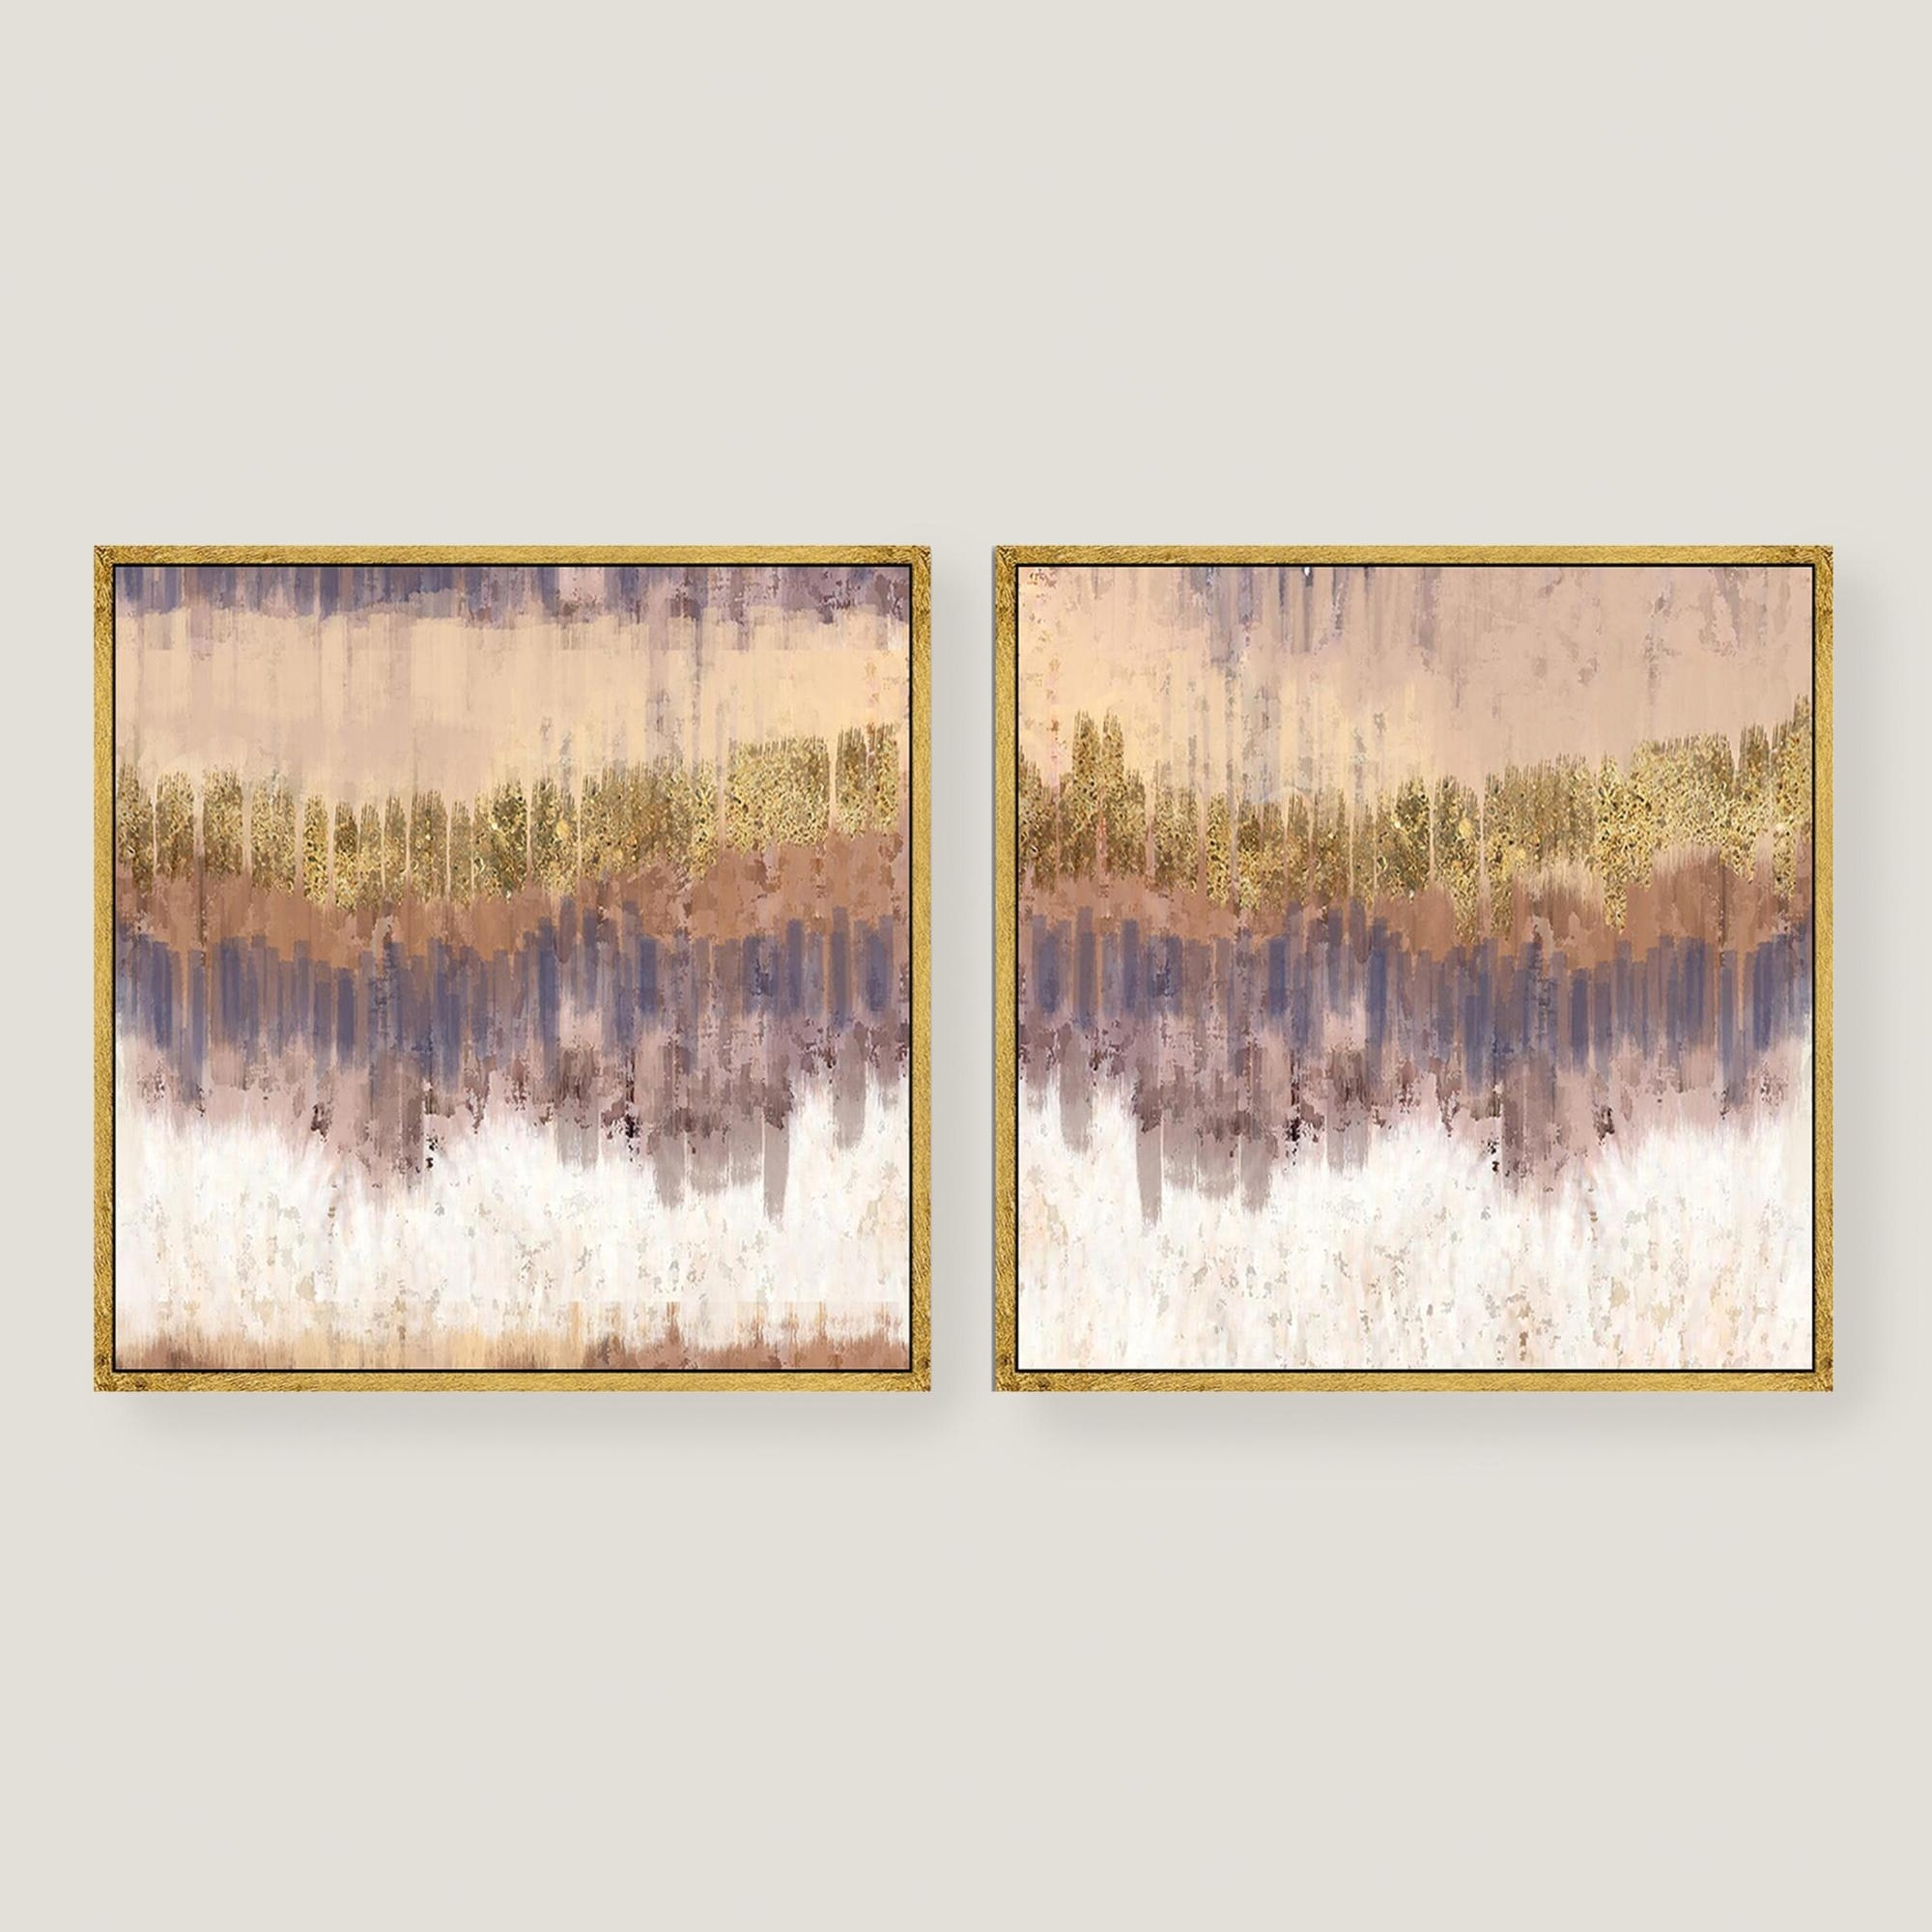 Fashionable Wall Art Designs: Kirklands Wall Art Golden Field Abstract Canvas Throughout Kirkland Abstract Wall Art (View 4 of 15)